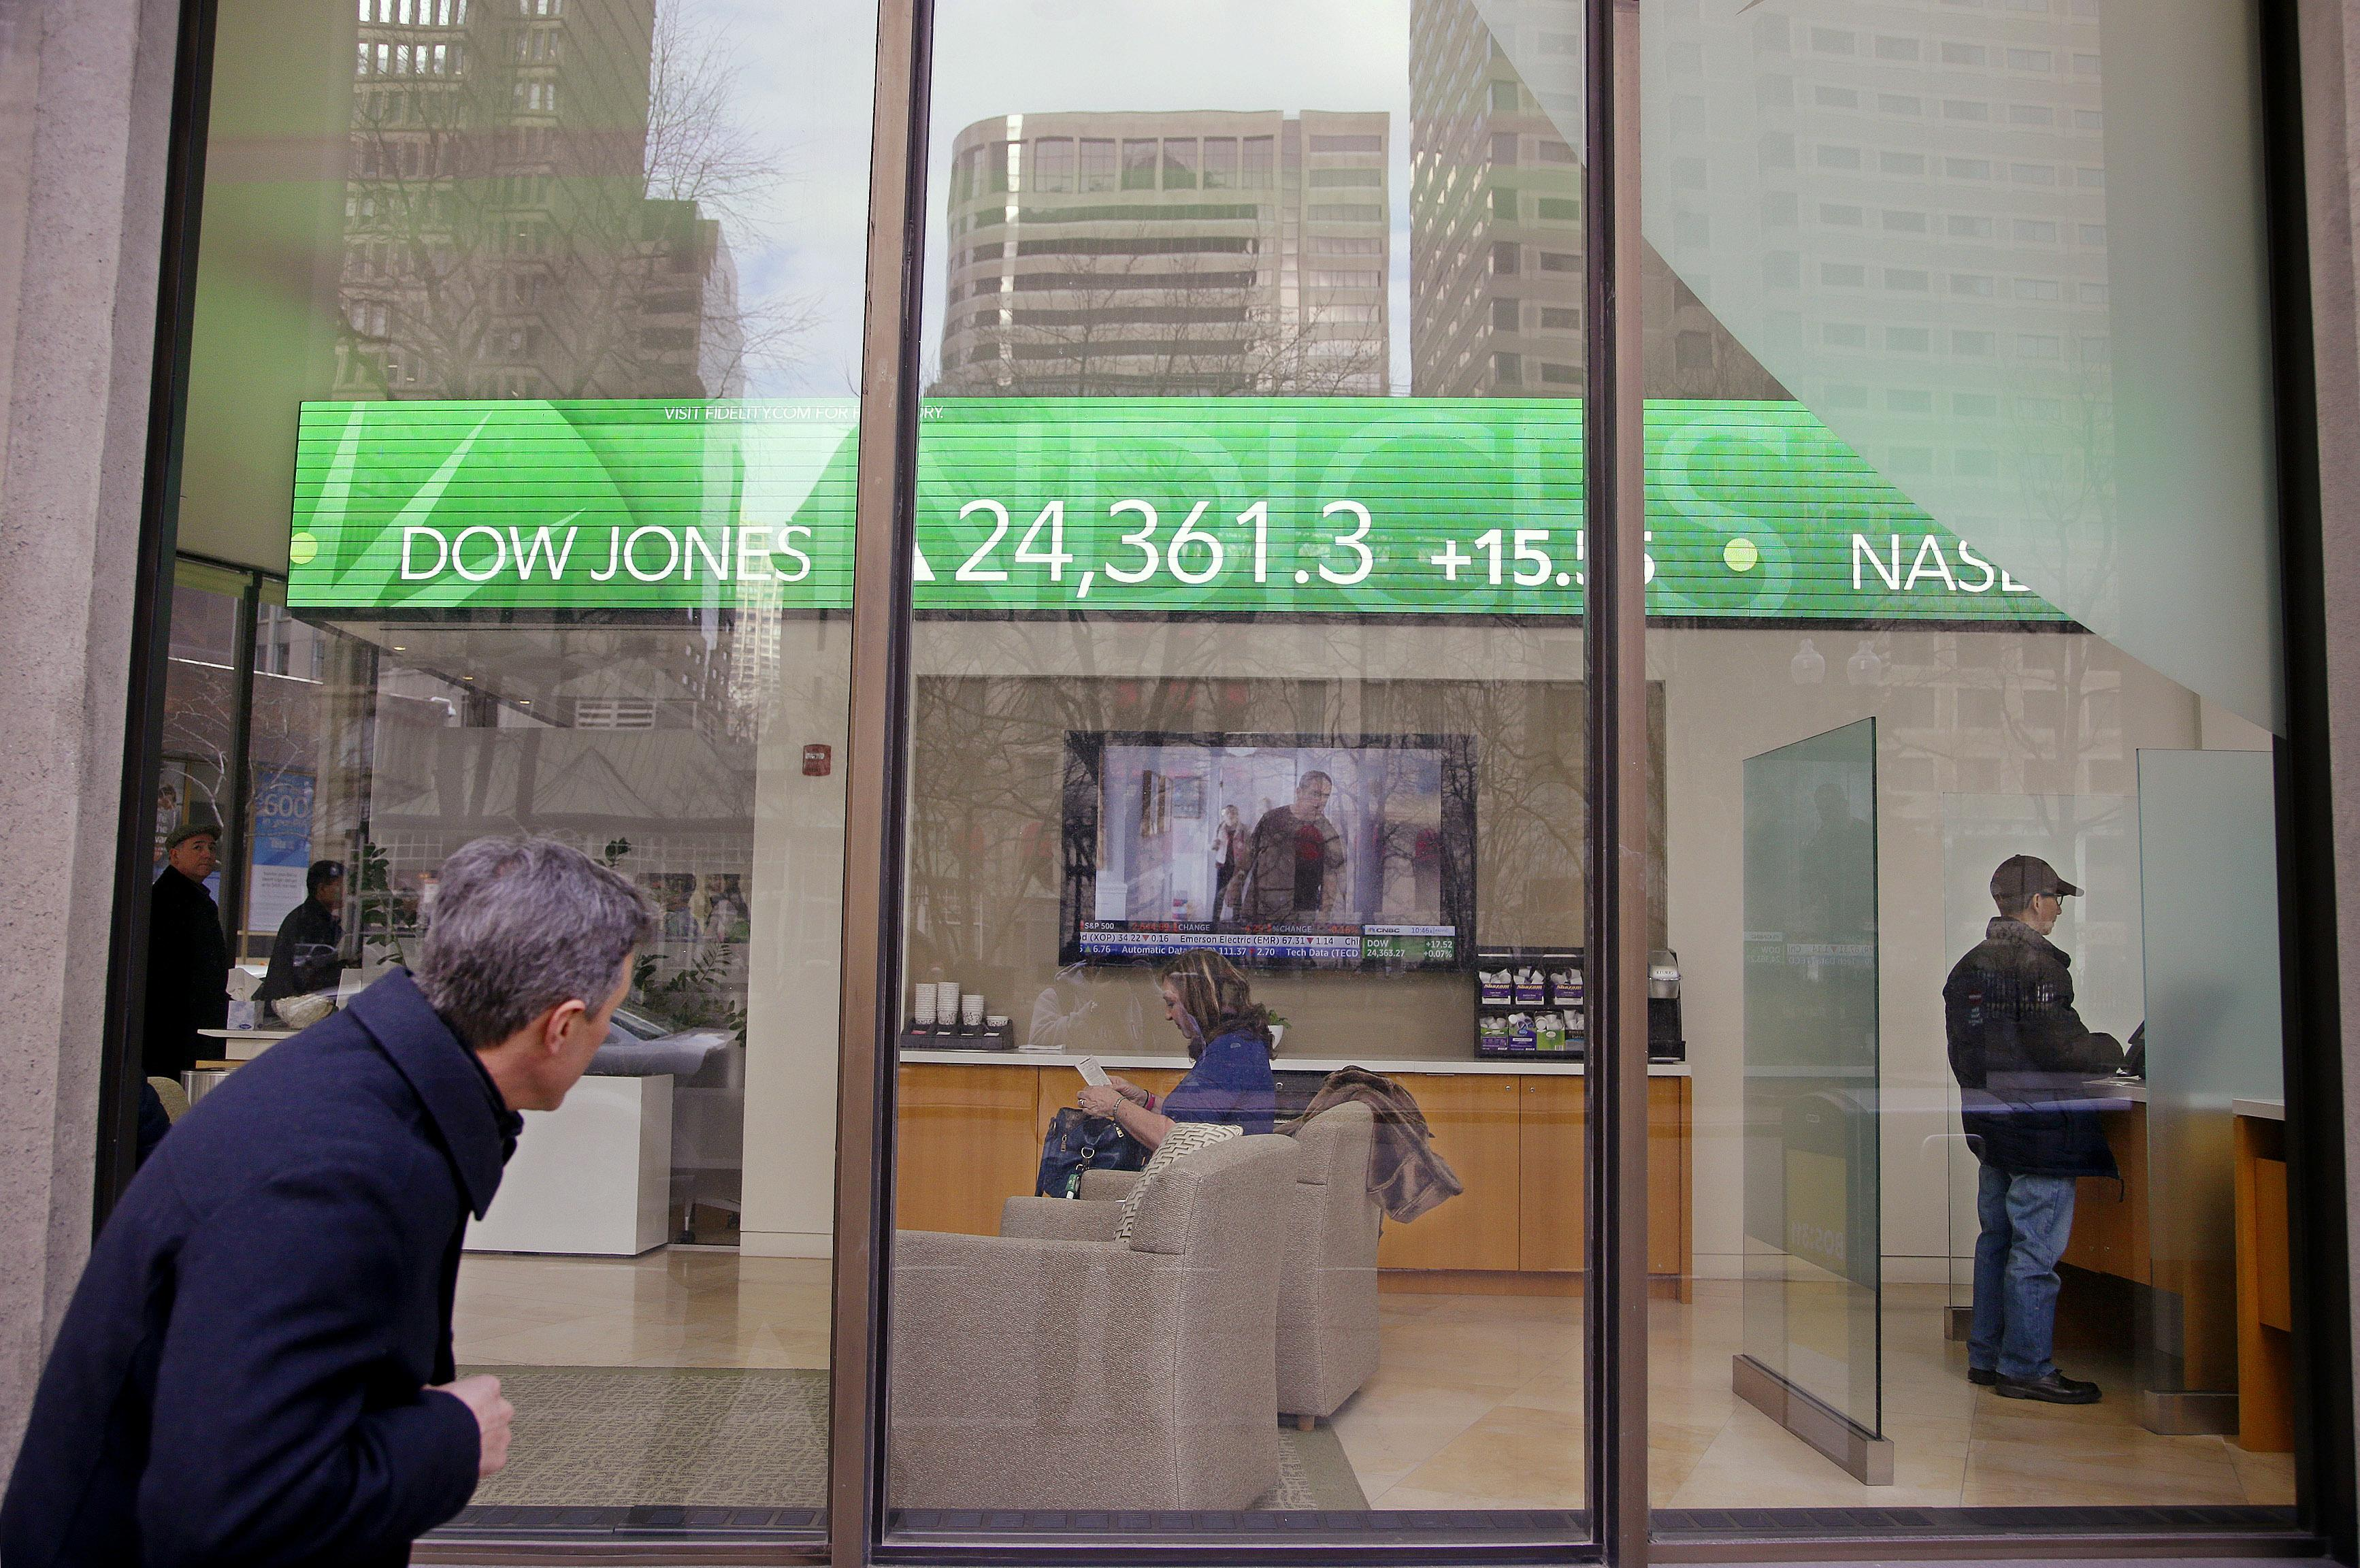 Perfect A Passer By Peers In The Window While Investors Congregate Feb. 6, 2018